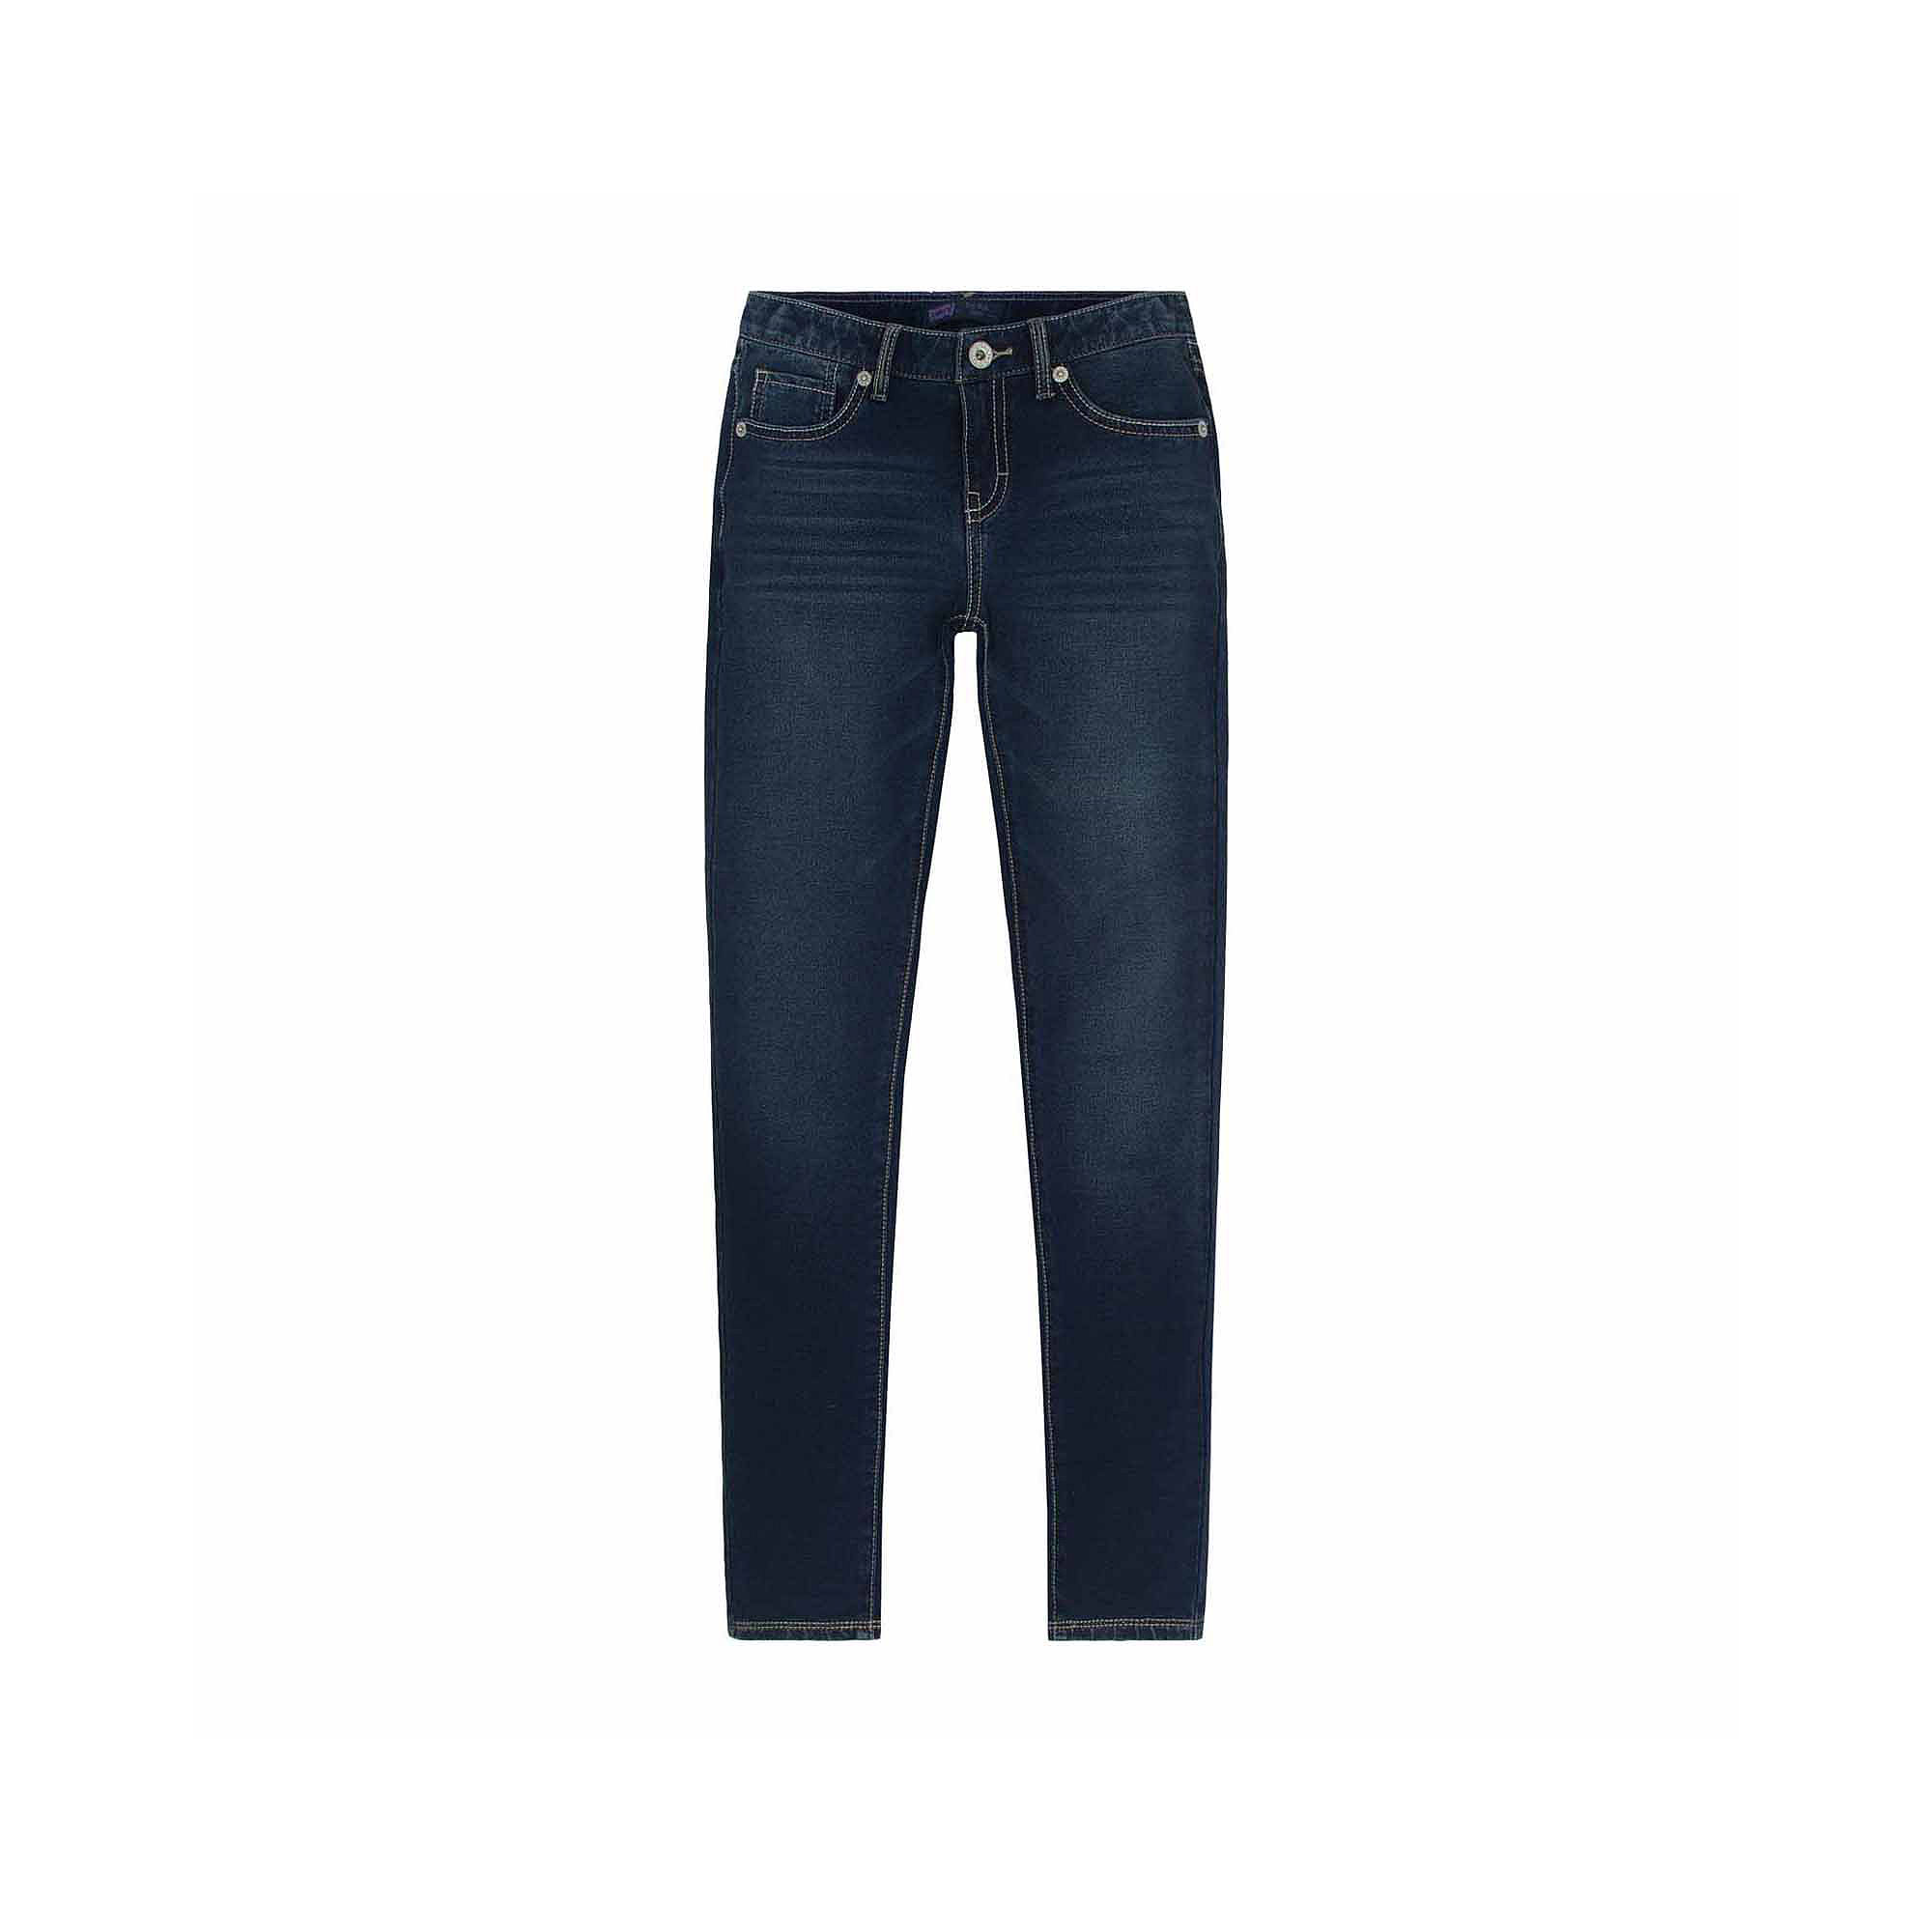 Levi's Knit Skinny Jeans - Girls 7-16 and Plus